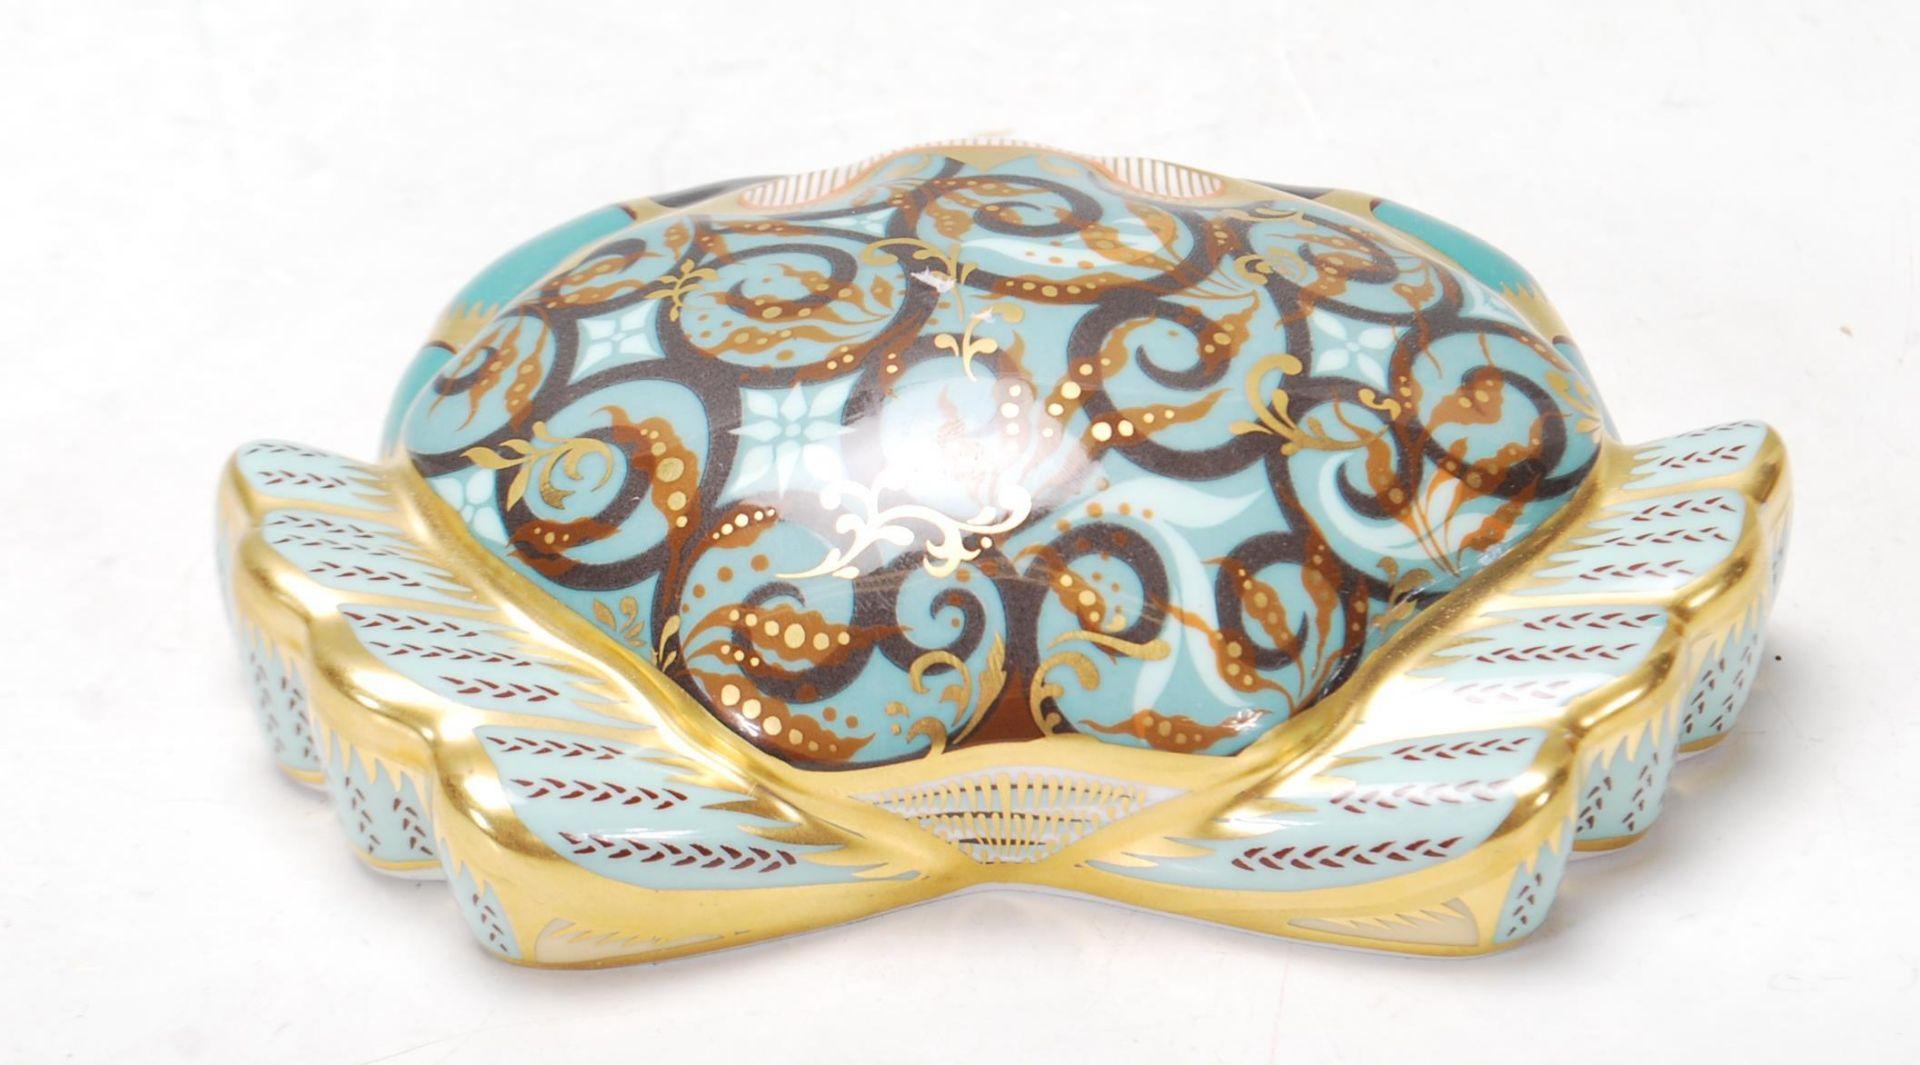 ROYAL CROWN DERBY PAPERWEIGHT IN A FORM OF A CROMER CRAB WITH GOLD STOPPER - Image 4 of 6